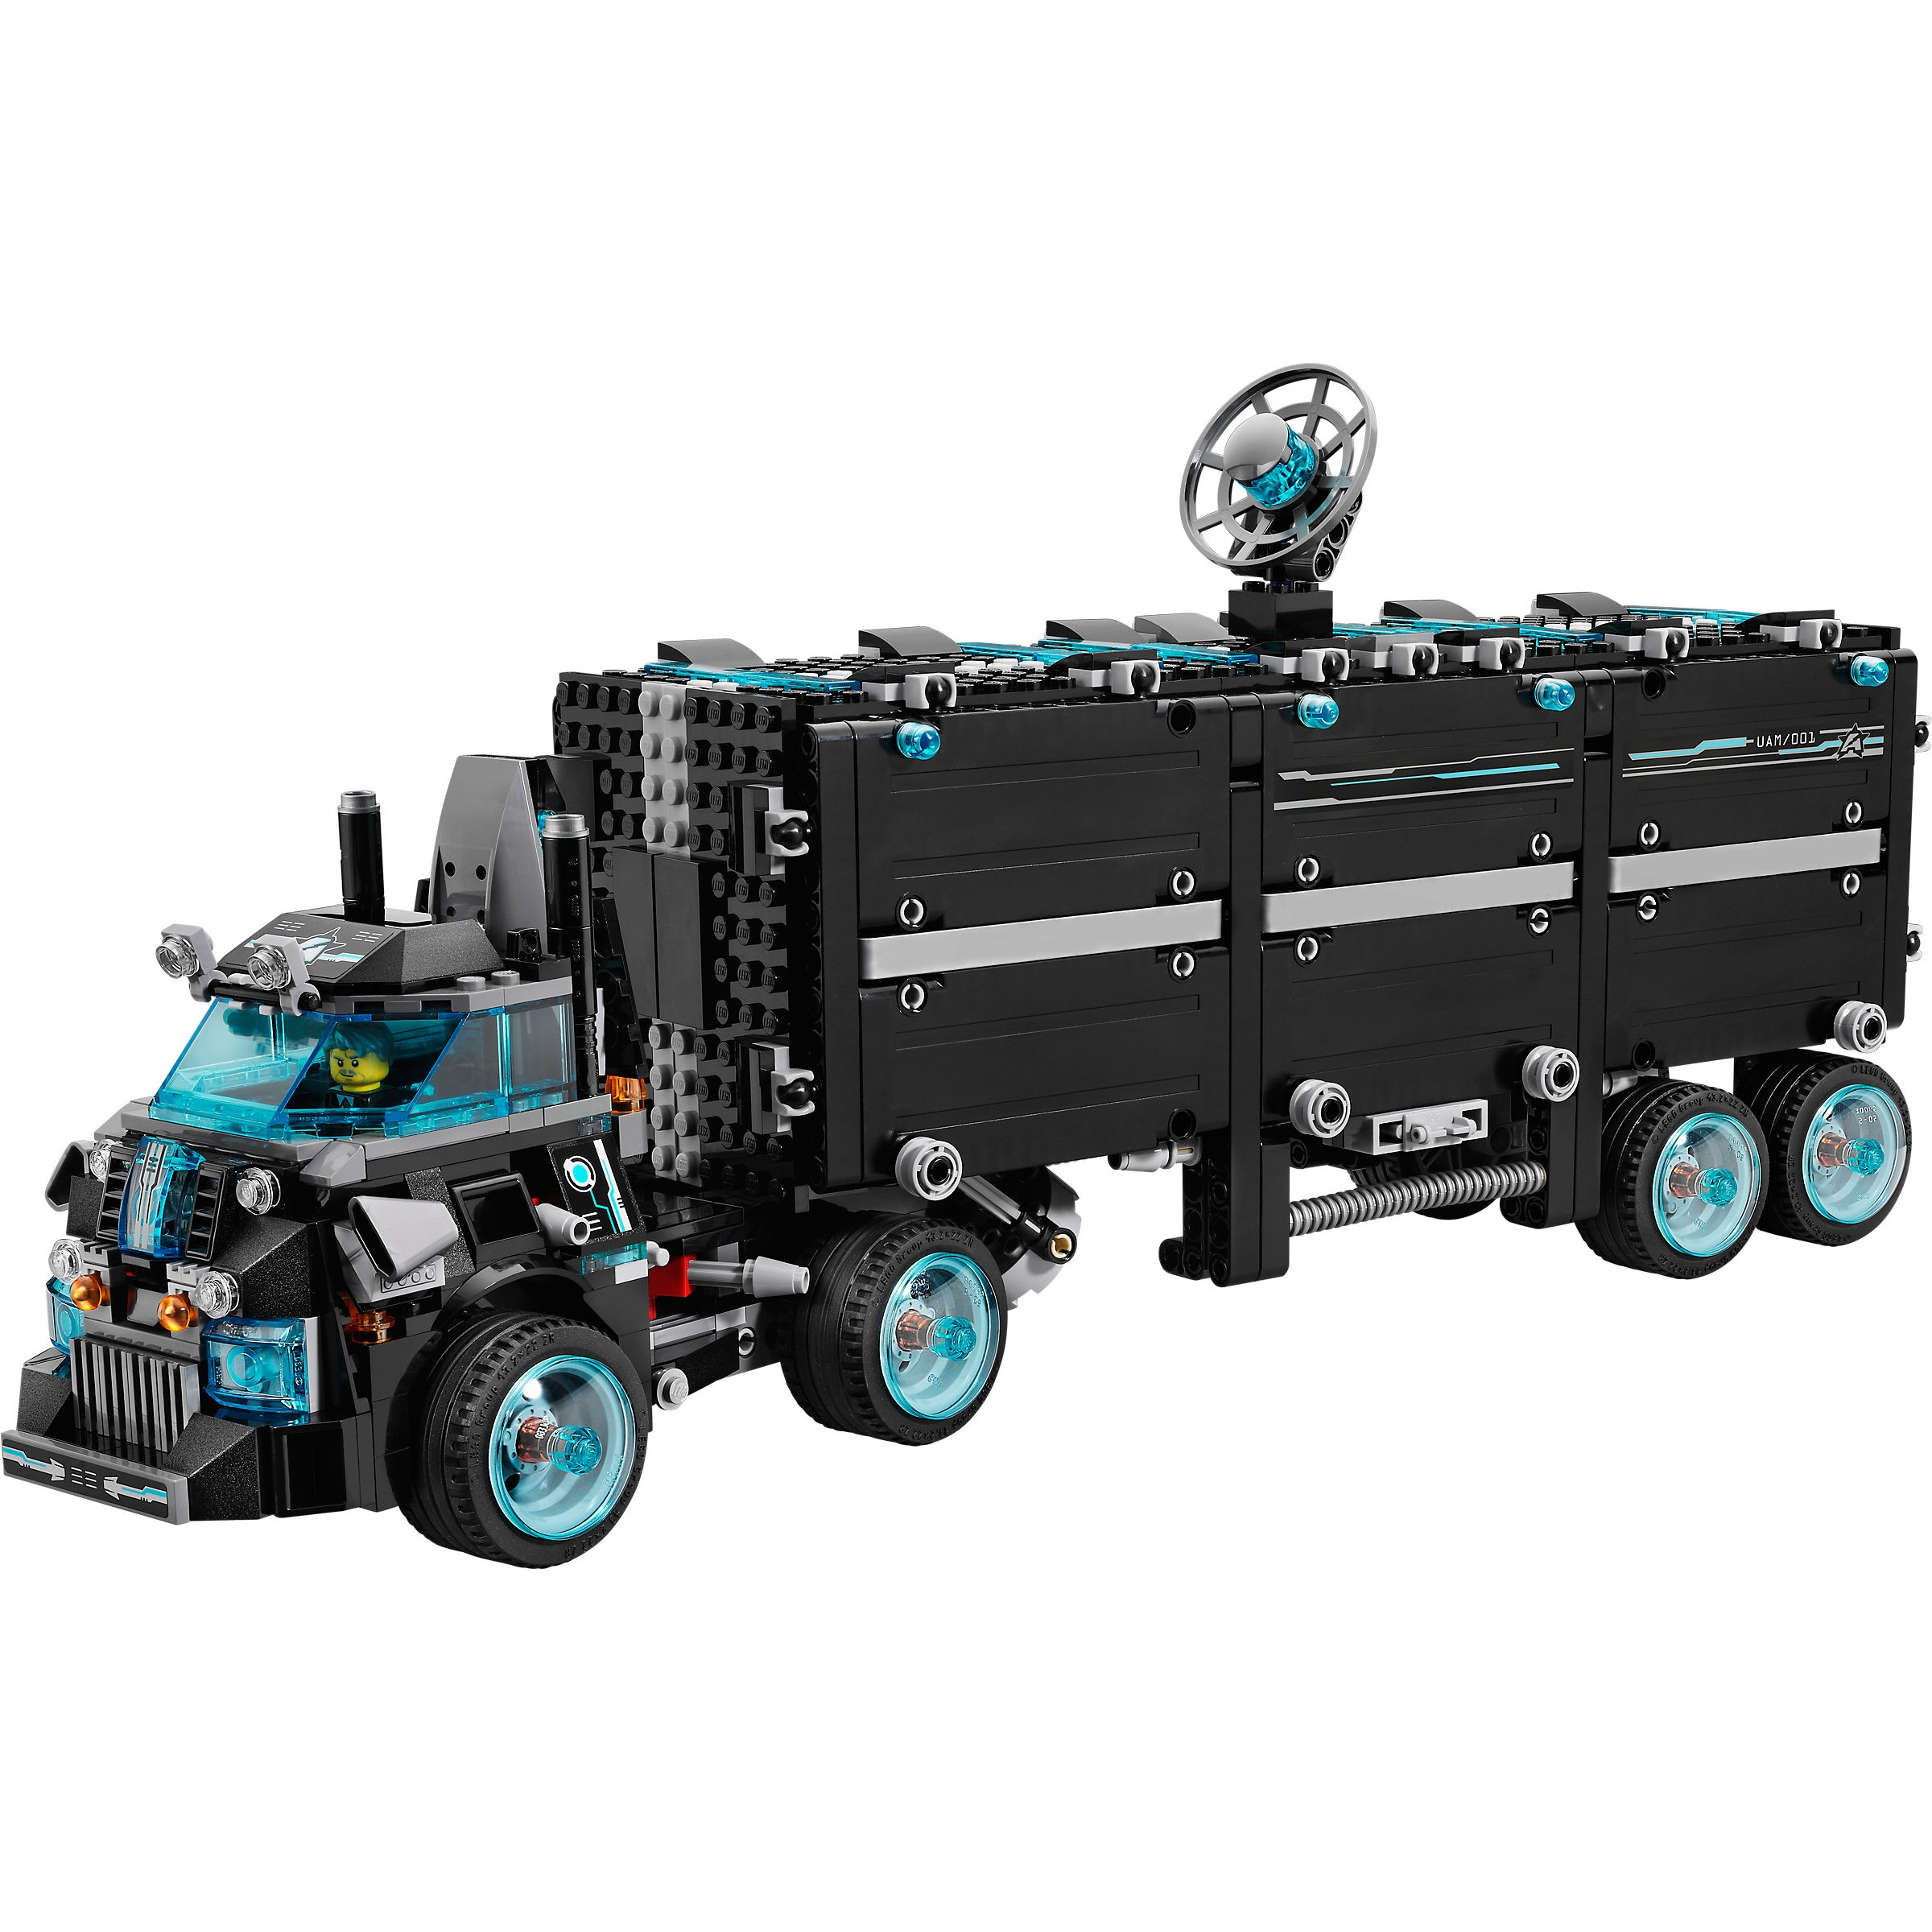 Home   187  LEGO Toys   187  Ultra Agents   187  LEG-70165Lego Agents Mission 2